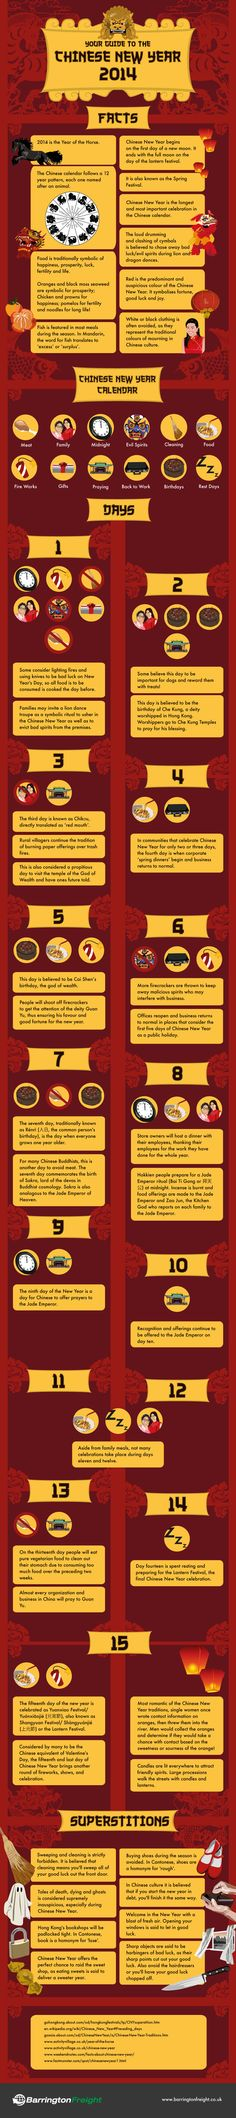 Your Guide To The Chinese New Year 2014 image BAF FINAL Infographic ChineseNewYear2 24 01 14